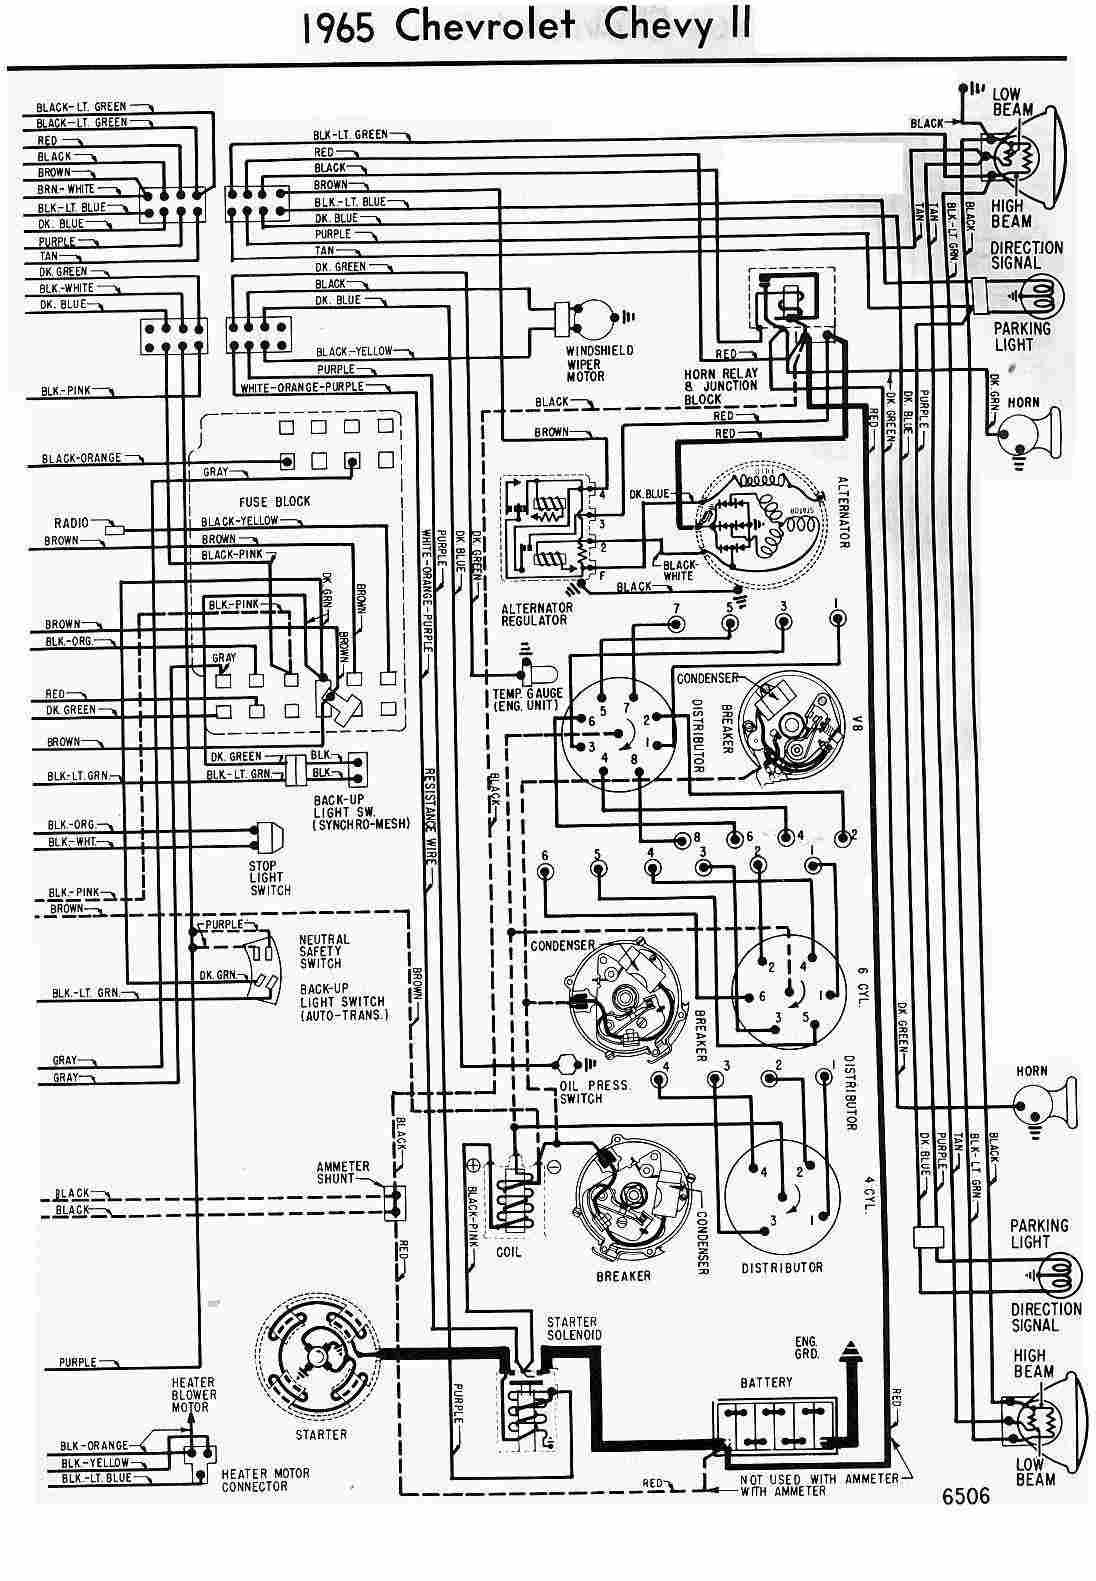 Ammeter Wiring Diagram 1971 Blazer Trusted Simple Chevrolet Car Manuals Diagrams Pdf Fault Codes Rh Automotive Net For Tractor